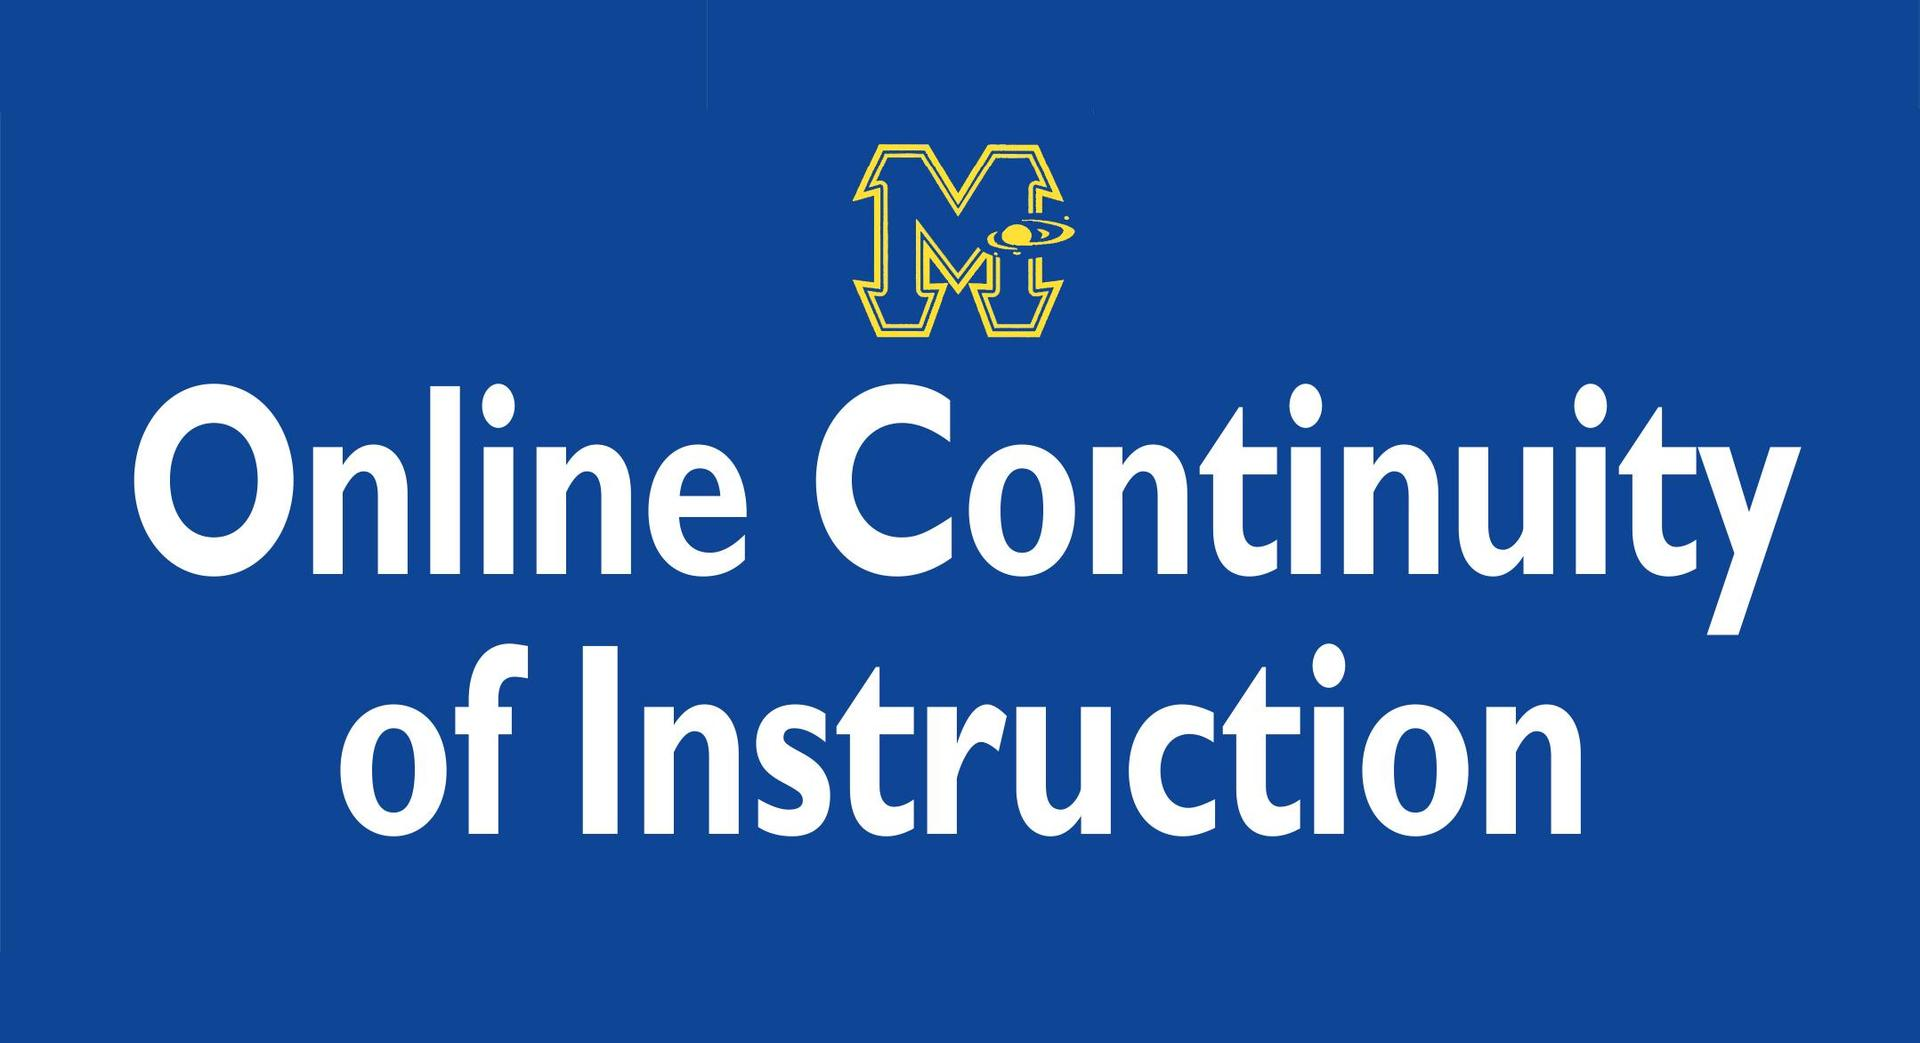 MASD Online Continuity of Instruction